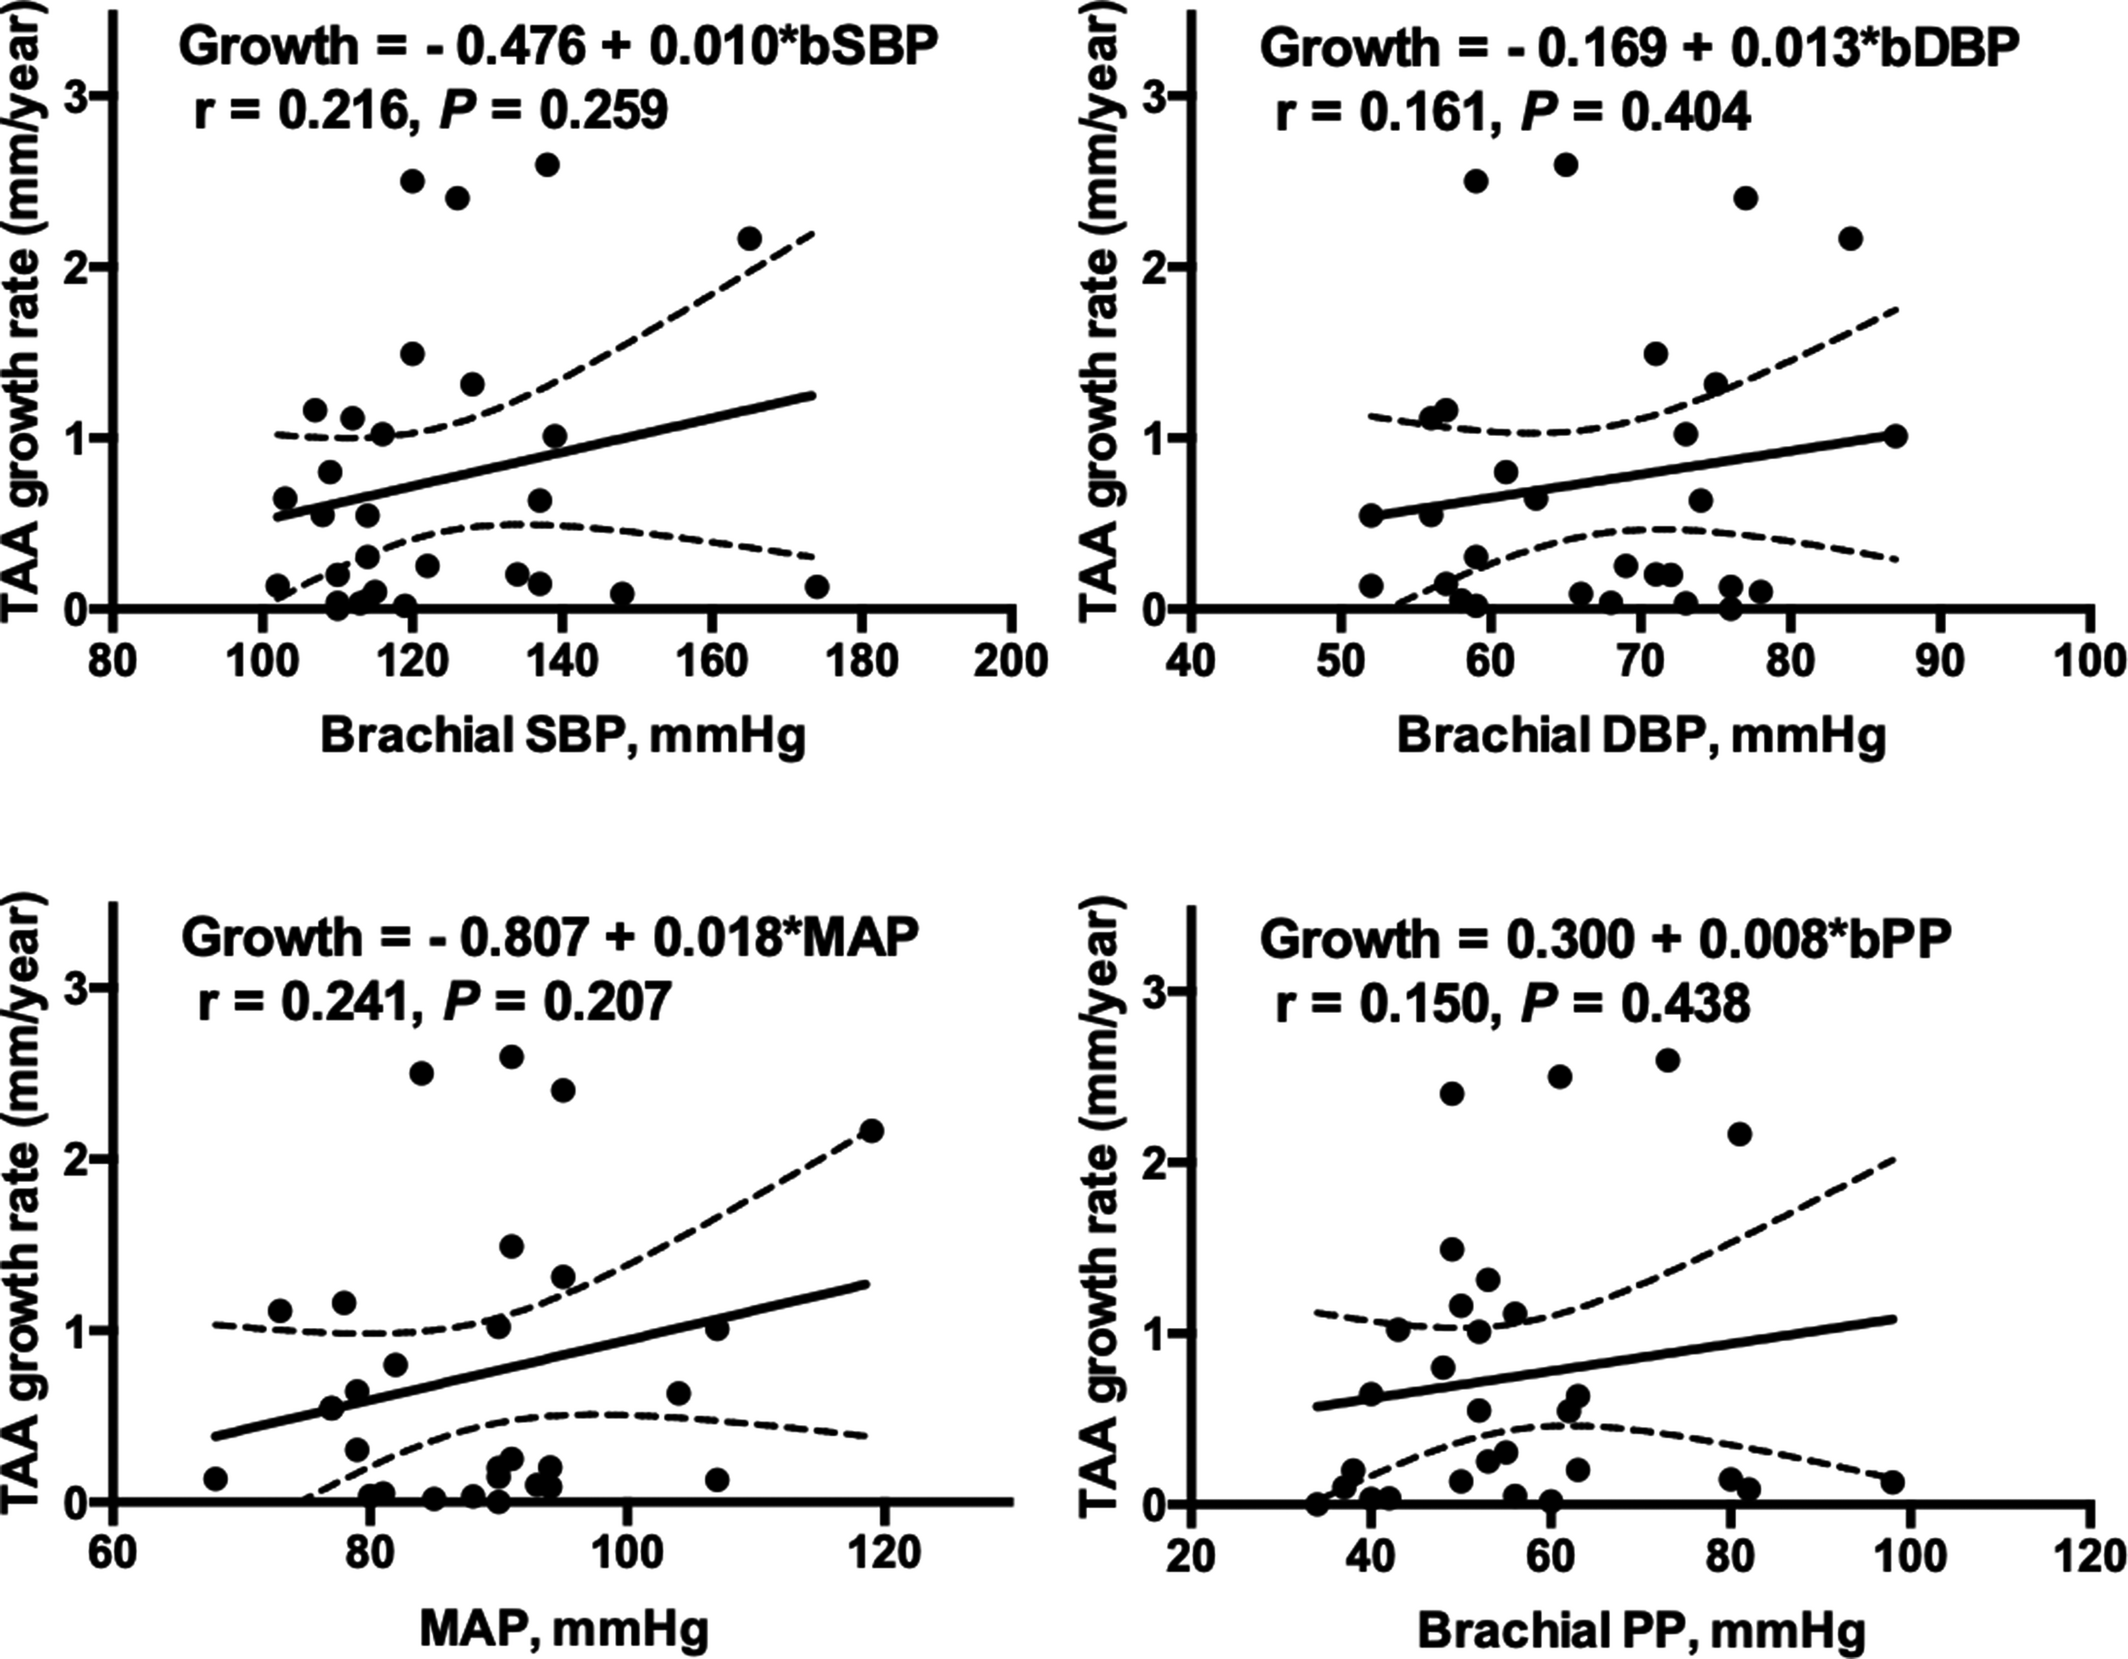 Thoracic Aortic Aneurysm Growth in Bicuspid Aortic Valve Patients